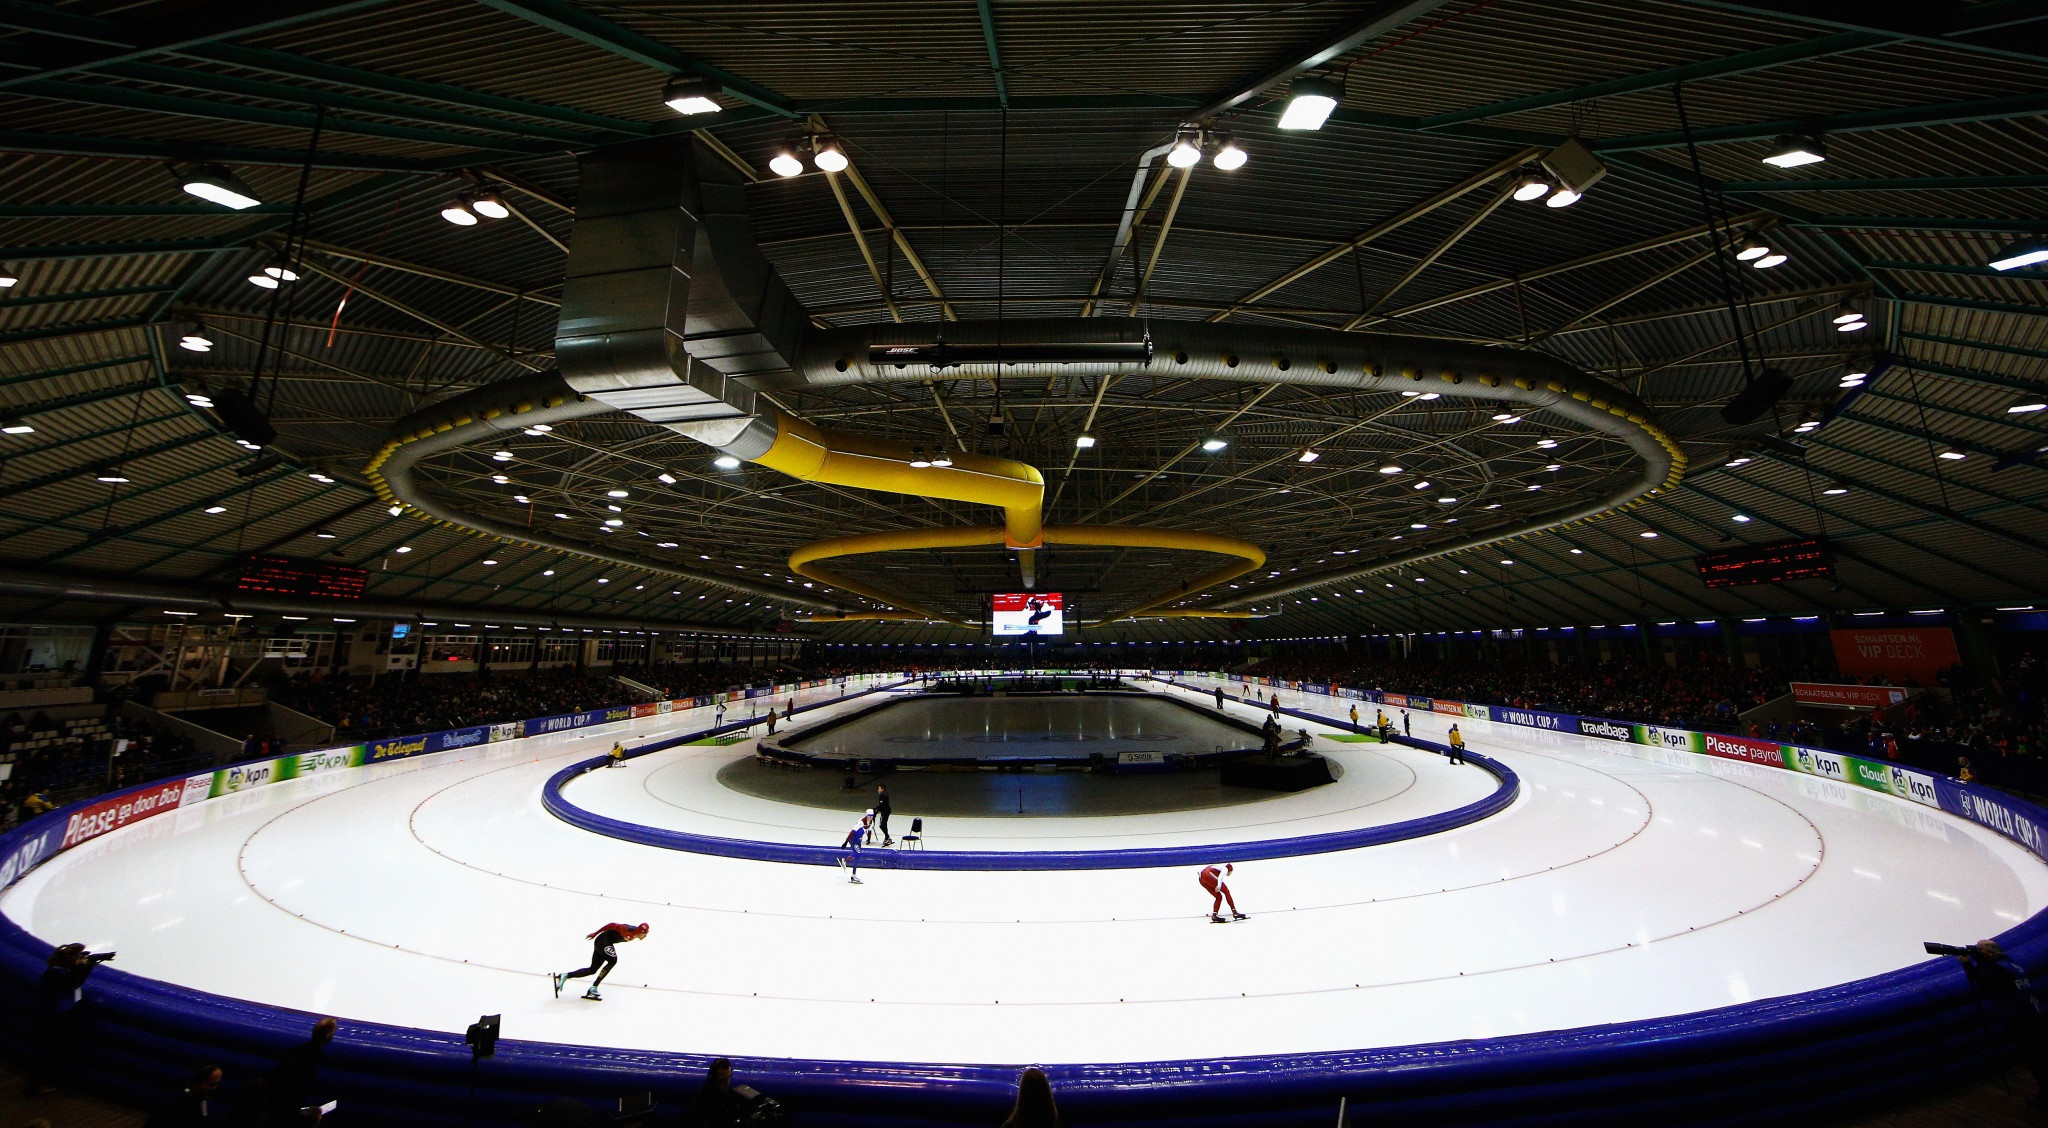 Heerenveen is set to stage two World Cup events after the European Speed Skating Championships ©Getty Images